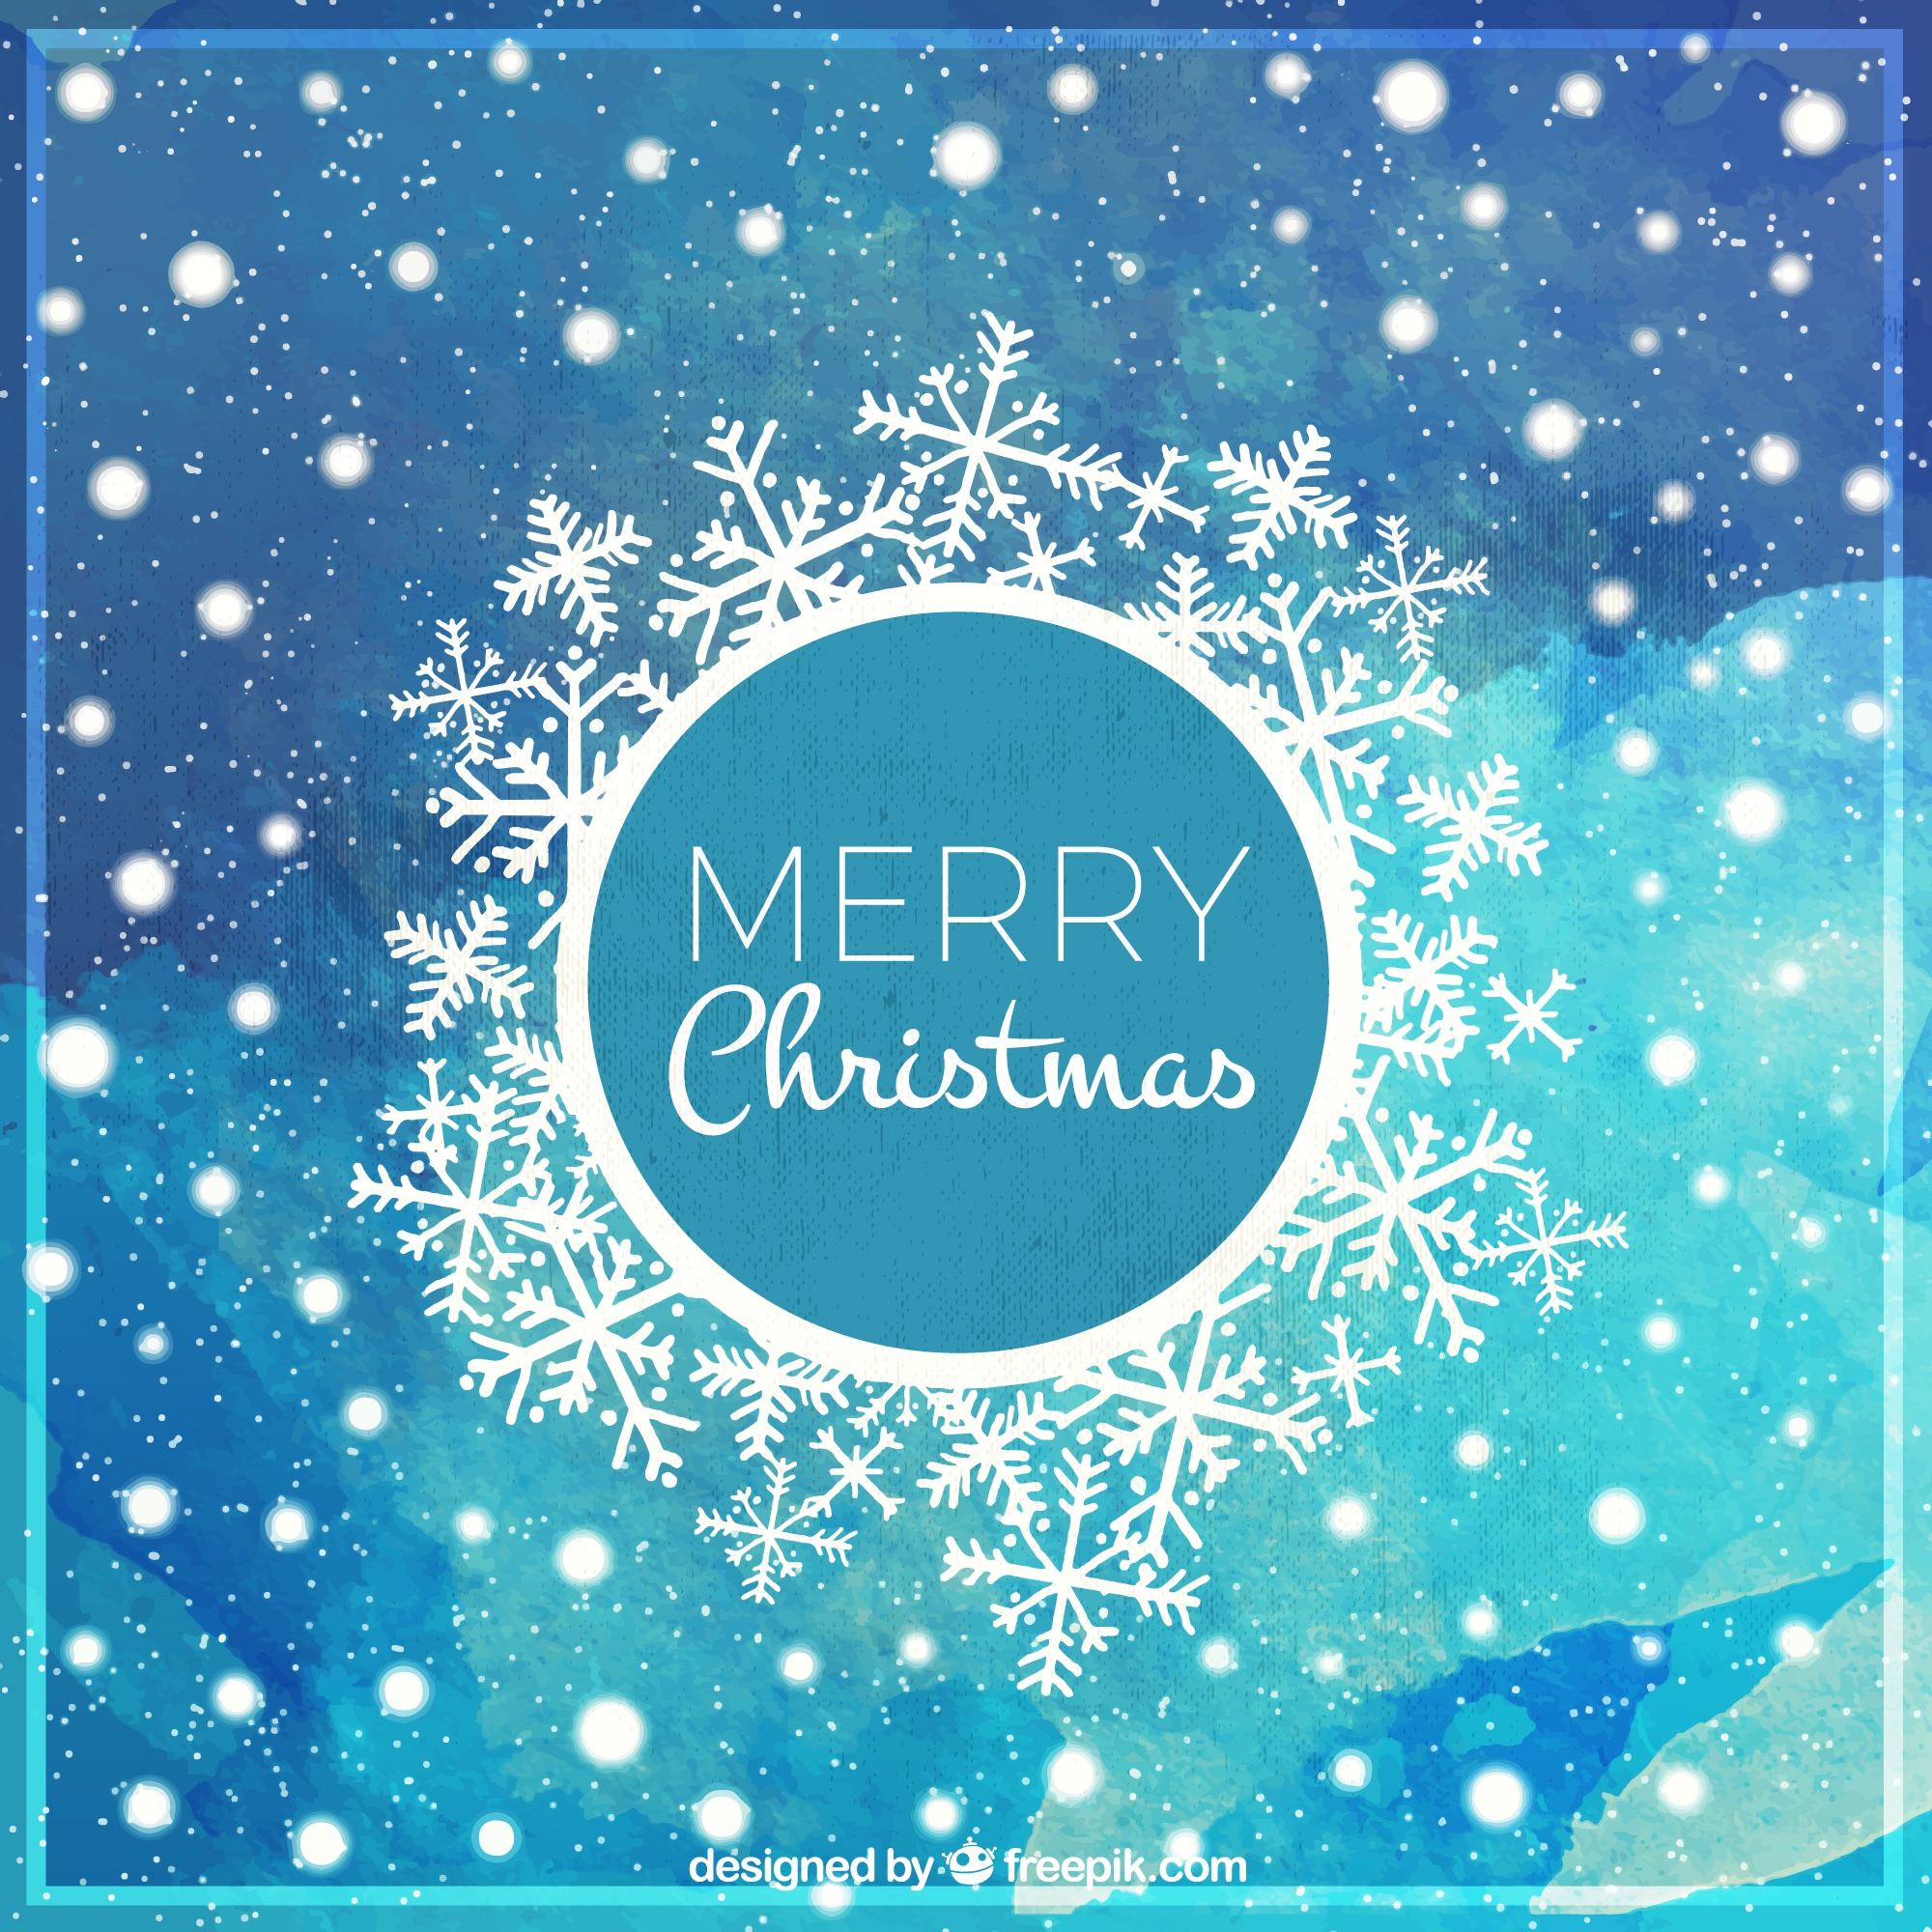 Merry christmas watercolor card with snowflakes